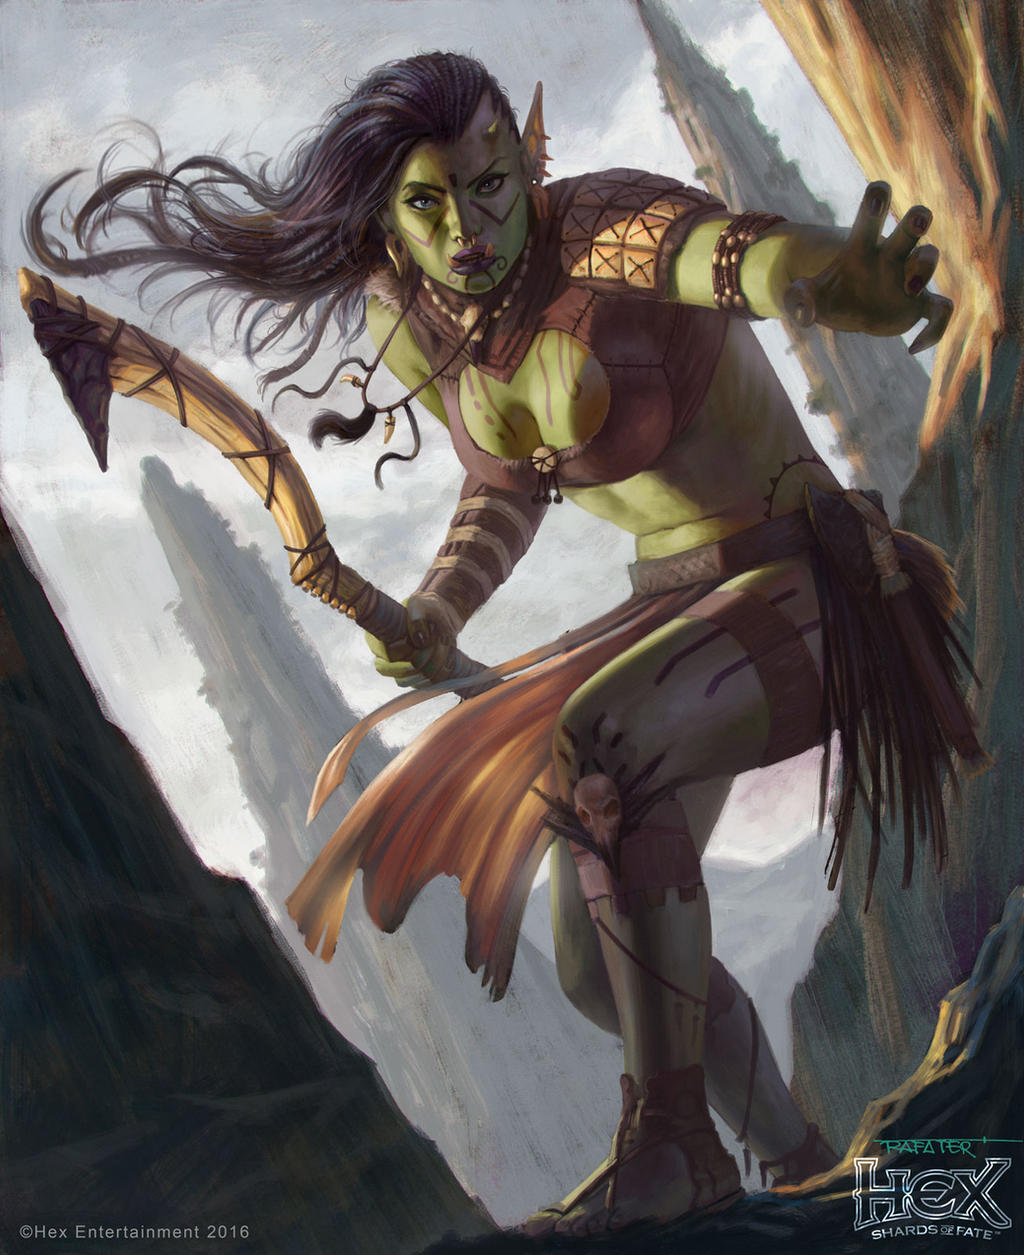 Warrior girl fights orcs and gets raped  naked pics